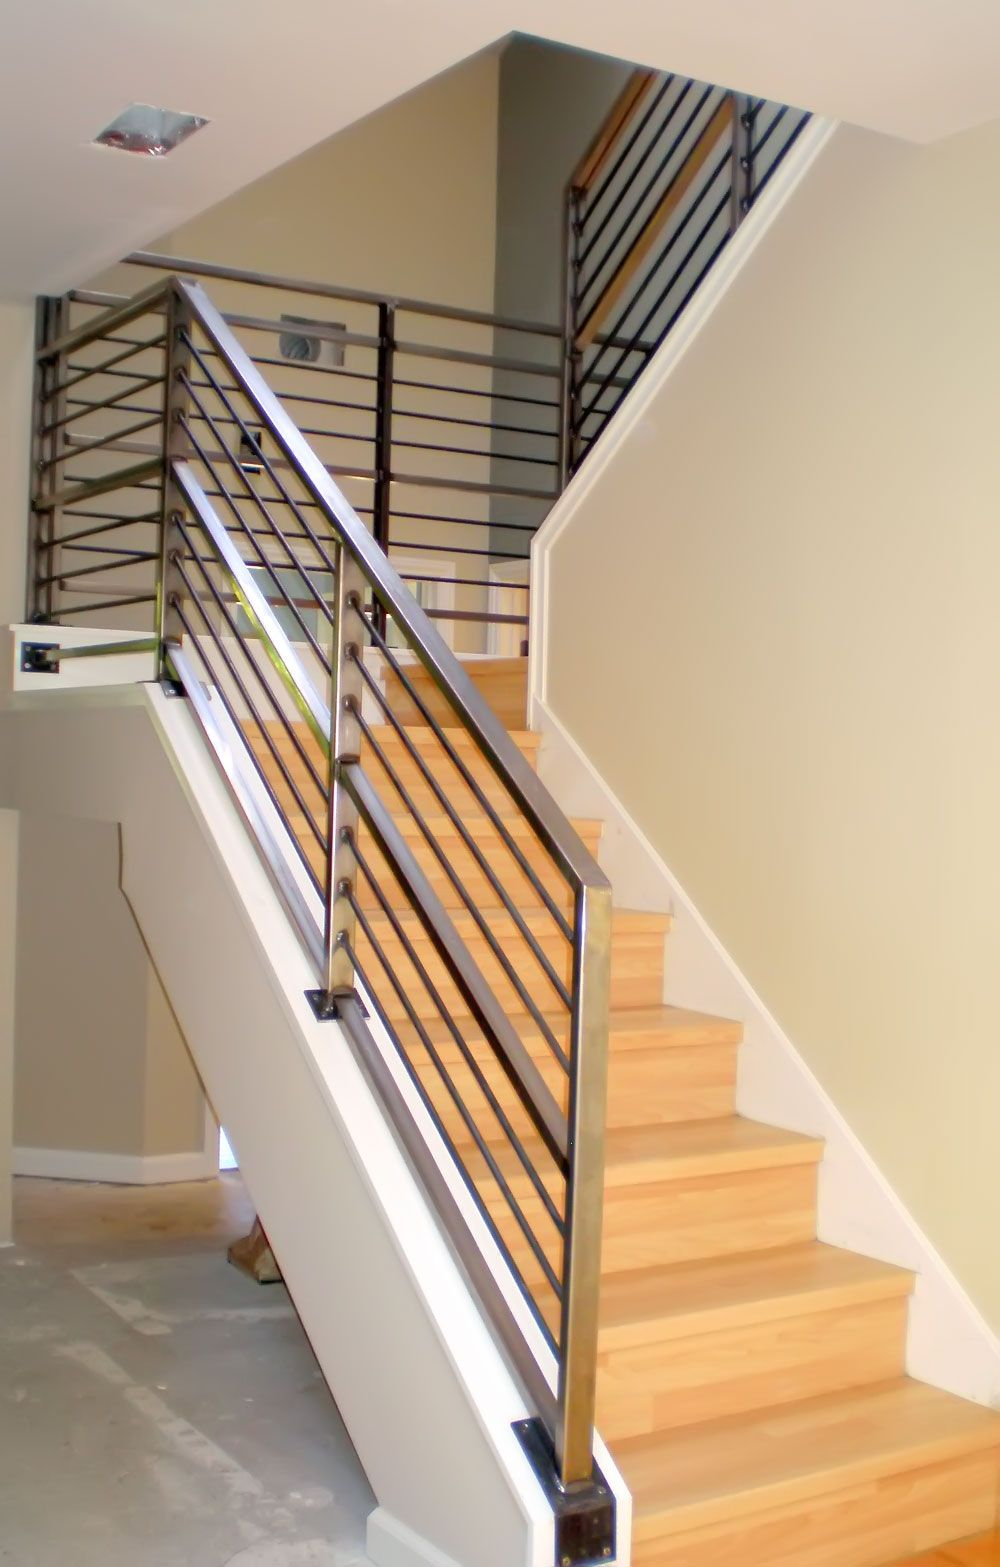 Charming Stair Railing Design Ideas To Beautify Your Rooms Fancy   Stair Handrails For Sale   Iron Staircase   Cable Railing   Deck Railing   Handrail Bracket   Balusters